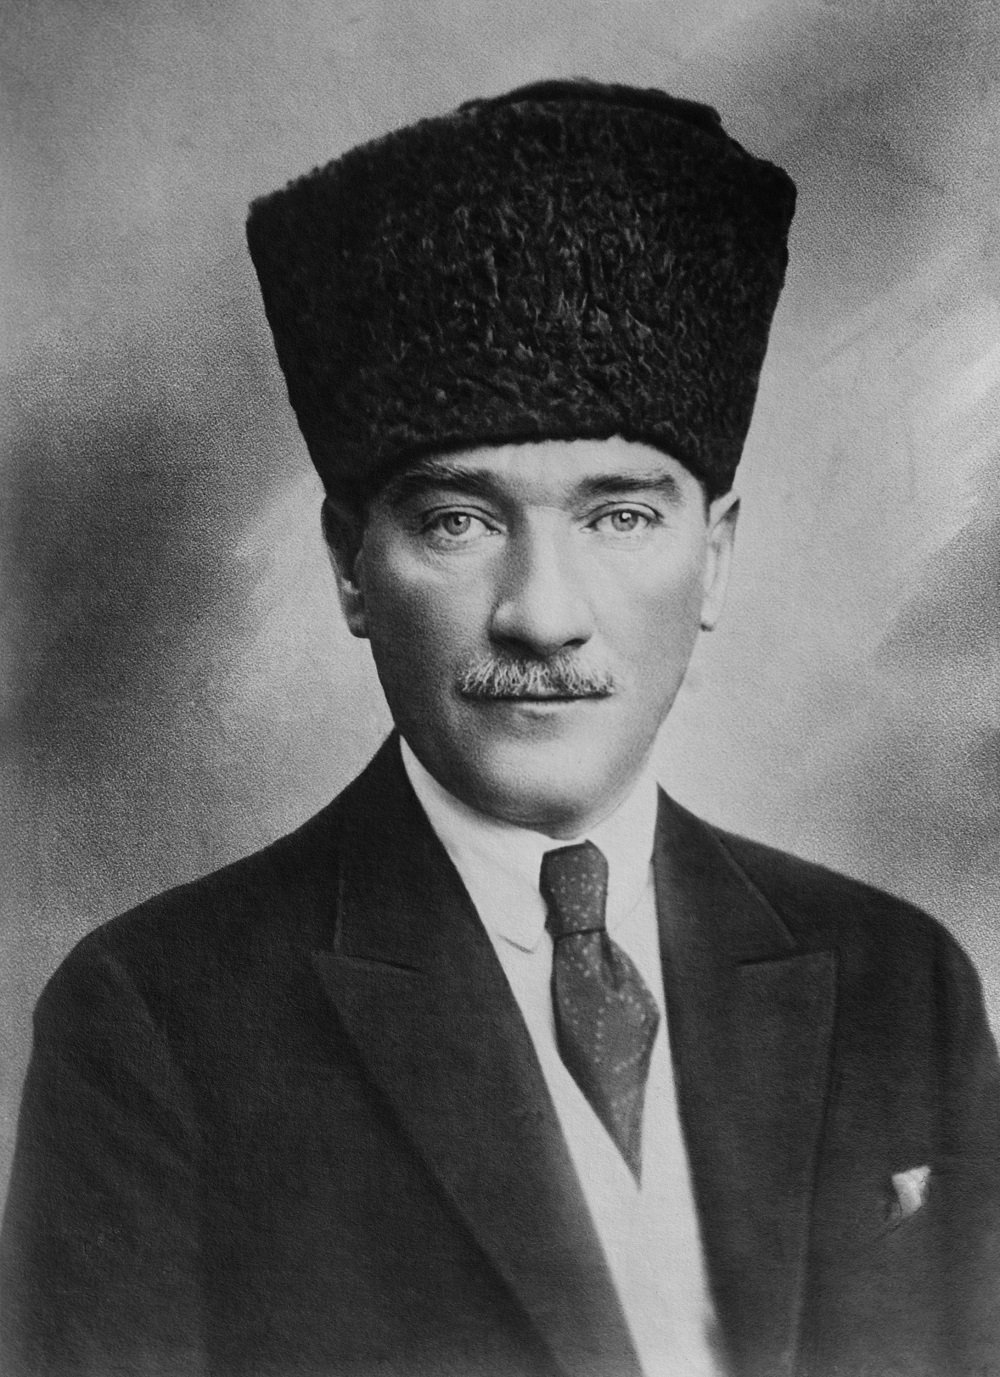 May 19 - Mustafa Kemal Atatürk lands at Samsun on the Anatolian Black Sea coast, marking the start of the Turkish War of Independence.